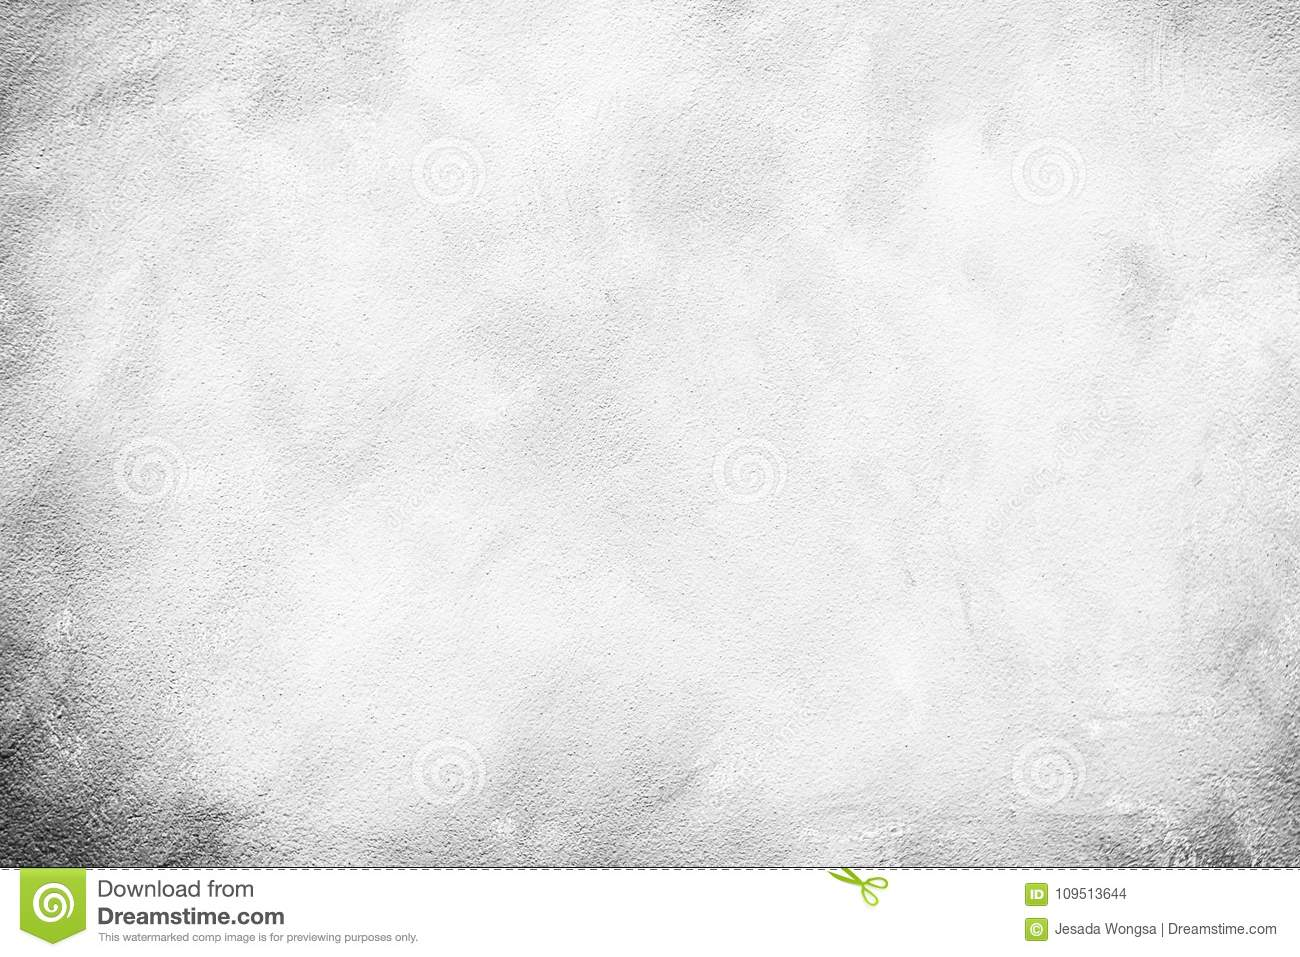 Download White Concrete Paint Wall Texture Backgroundflooring For Text Images Websites